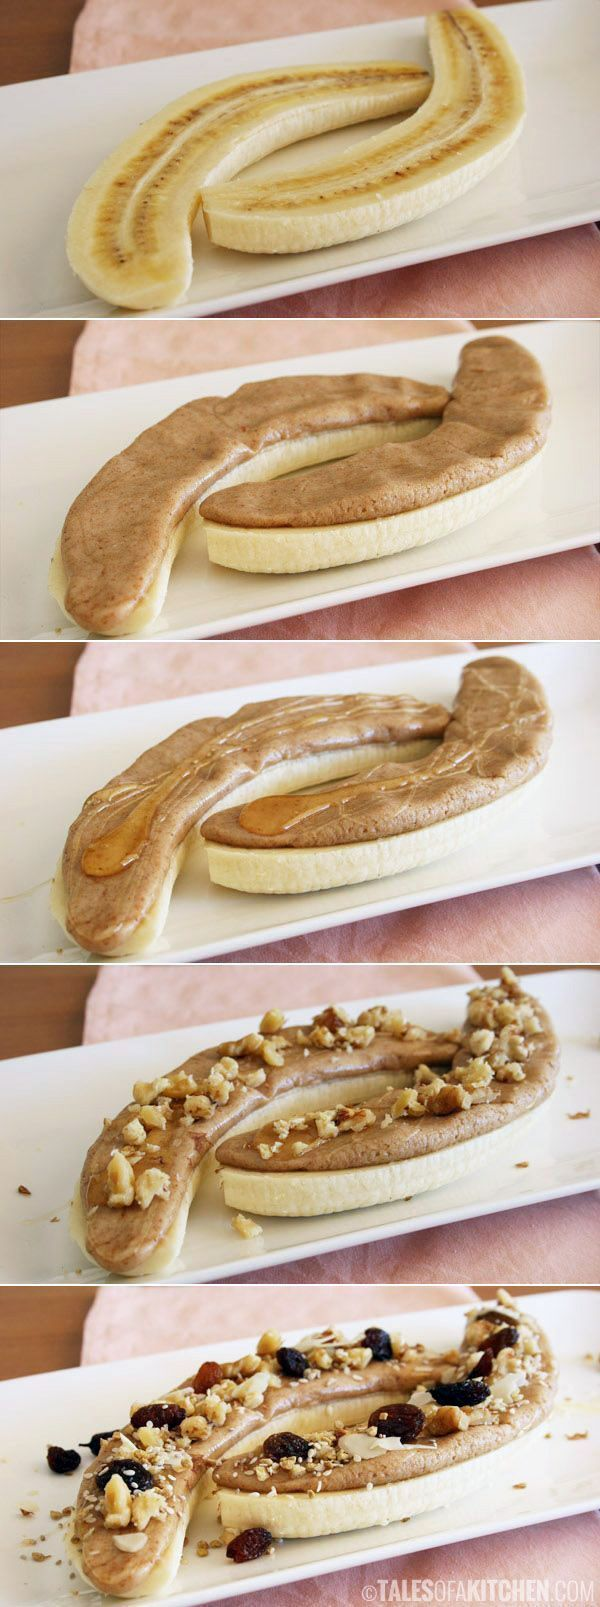 skip Peanut butter and replace with almond butter, honey, nuts and raisin banana breakfast